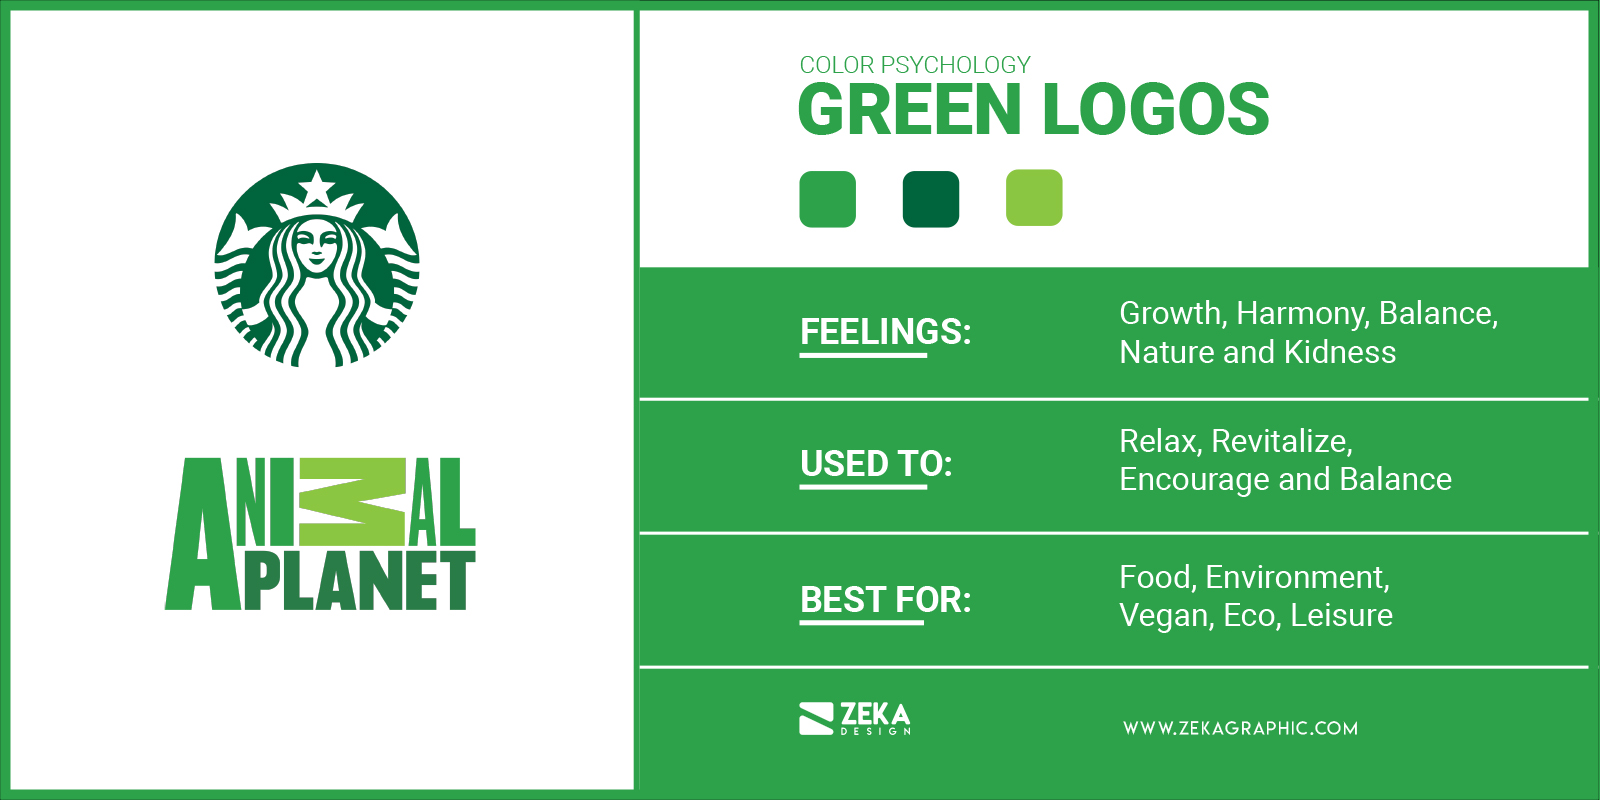 Green Logos Meaning in Graphic Design and Logo Design